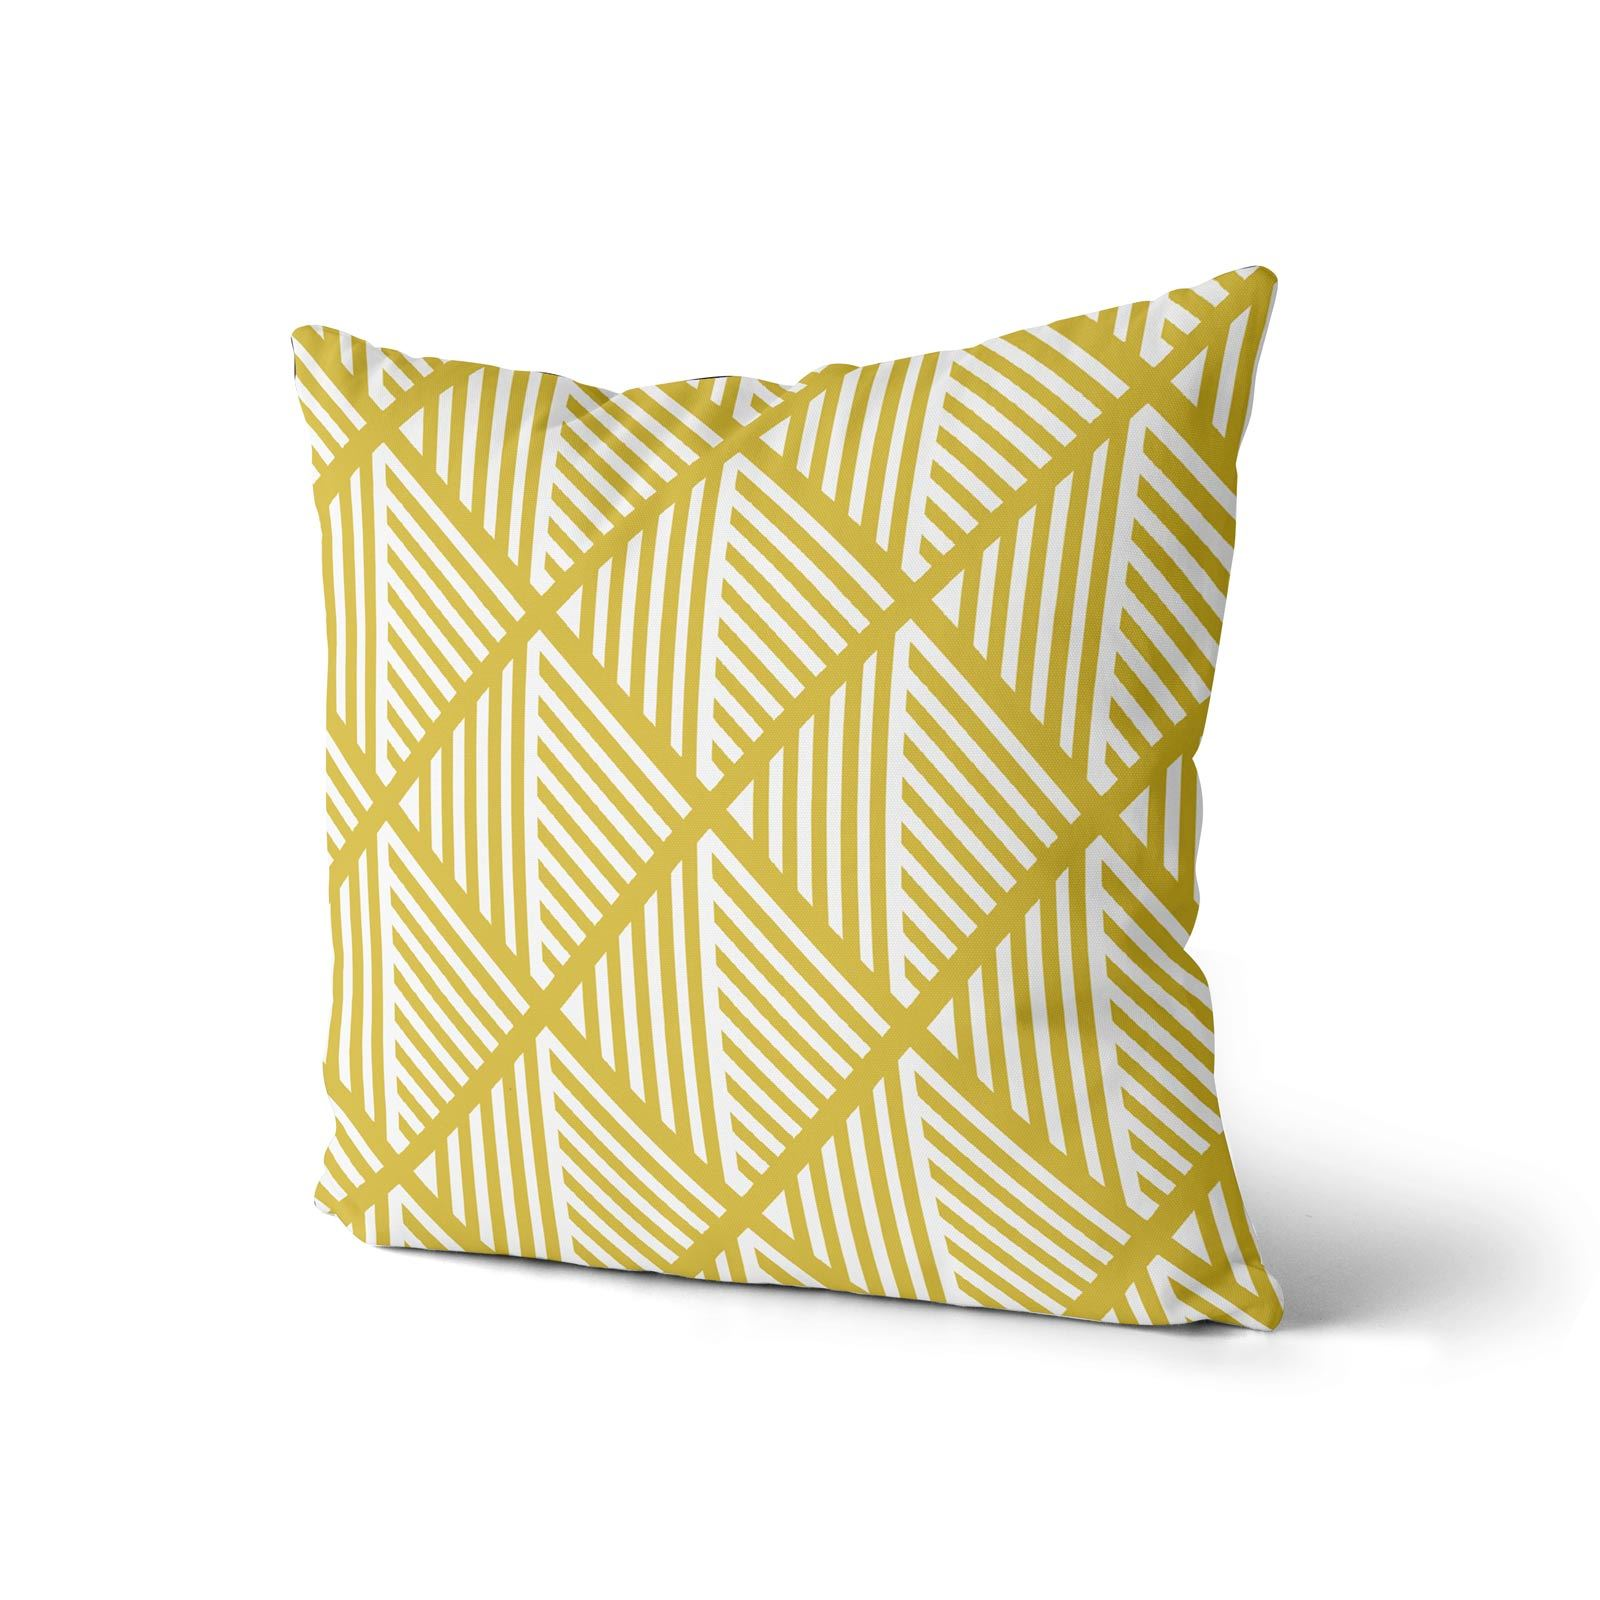 Grey-Ochre-Mustard-Cushion-Cover-Collection-17-034-18-034-Covers-Filled-Cushions thumbnail 41